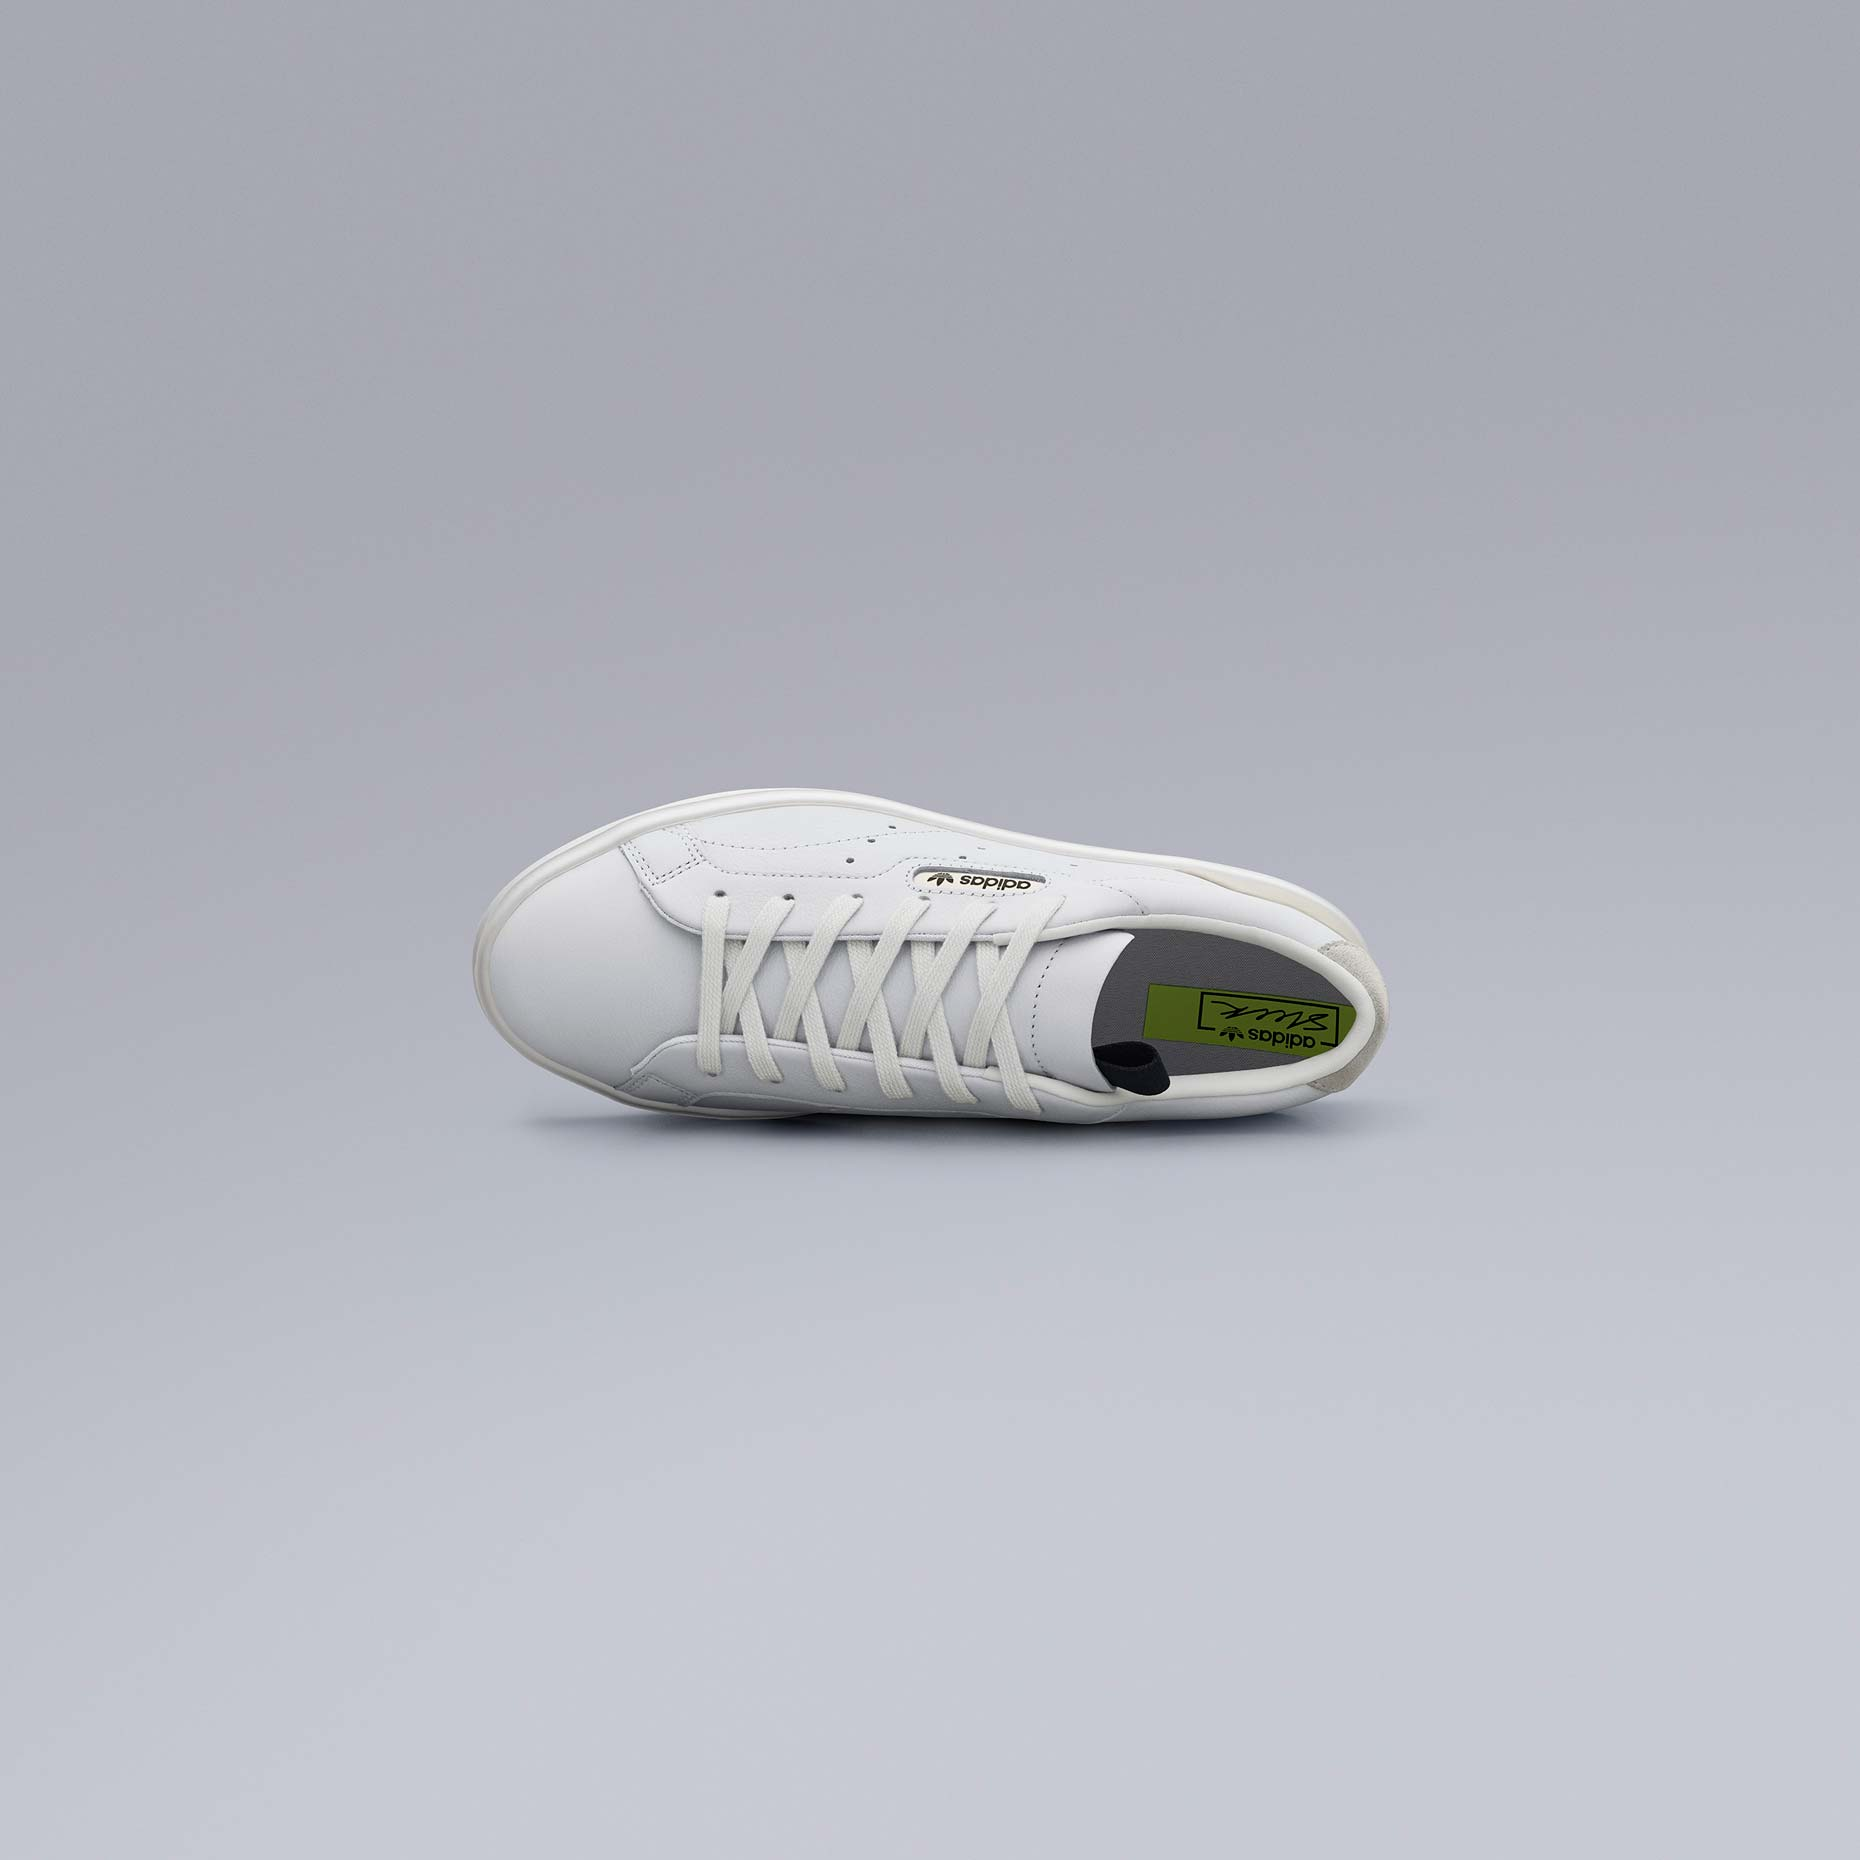 adidasOriginals_SS19_Sleek_SleekW_CG6199_02_Angle_COMP_c